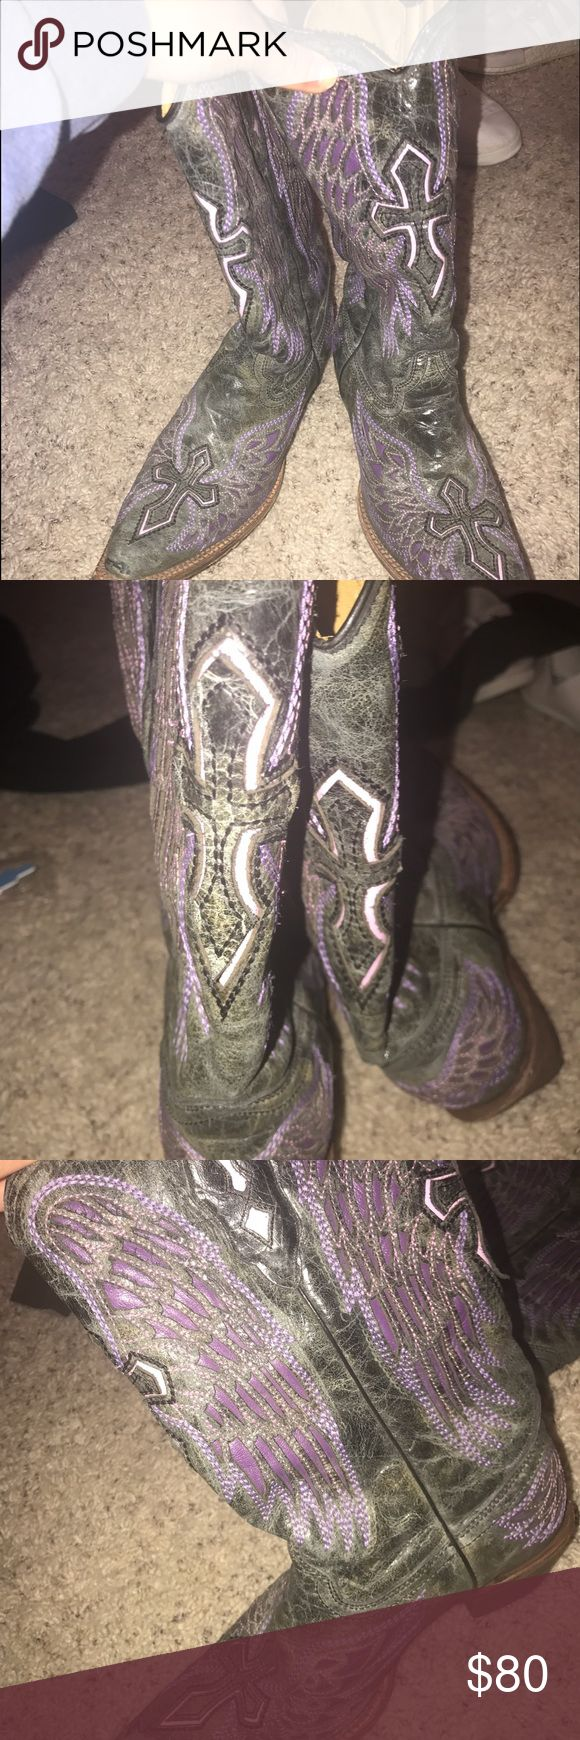 Women's cowboy purple and black boots! Size 10 Slightly worn but GREAT shape! Super cute and comfy ! There are crosses in the front and back and wings on the side! Bought from Cavenders! Shoes